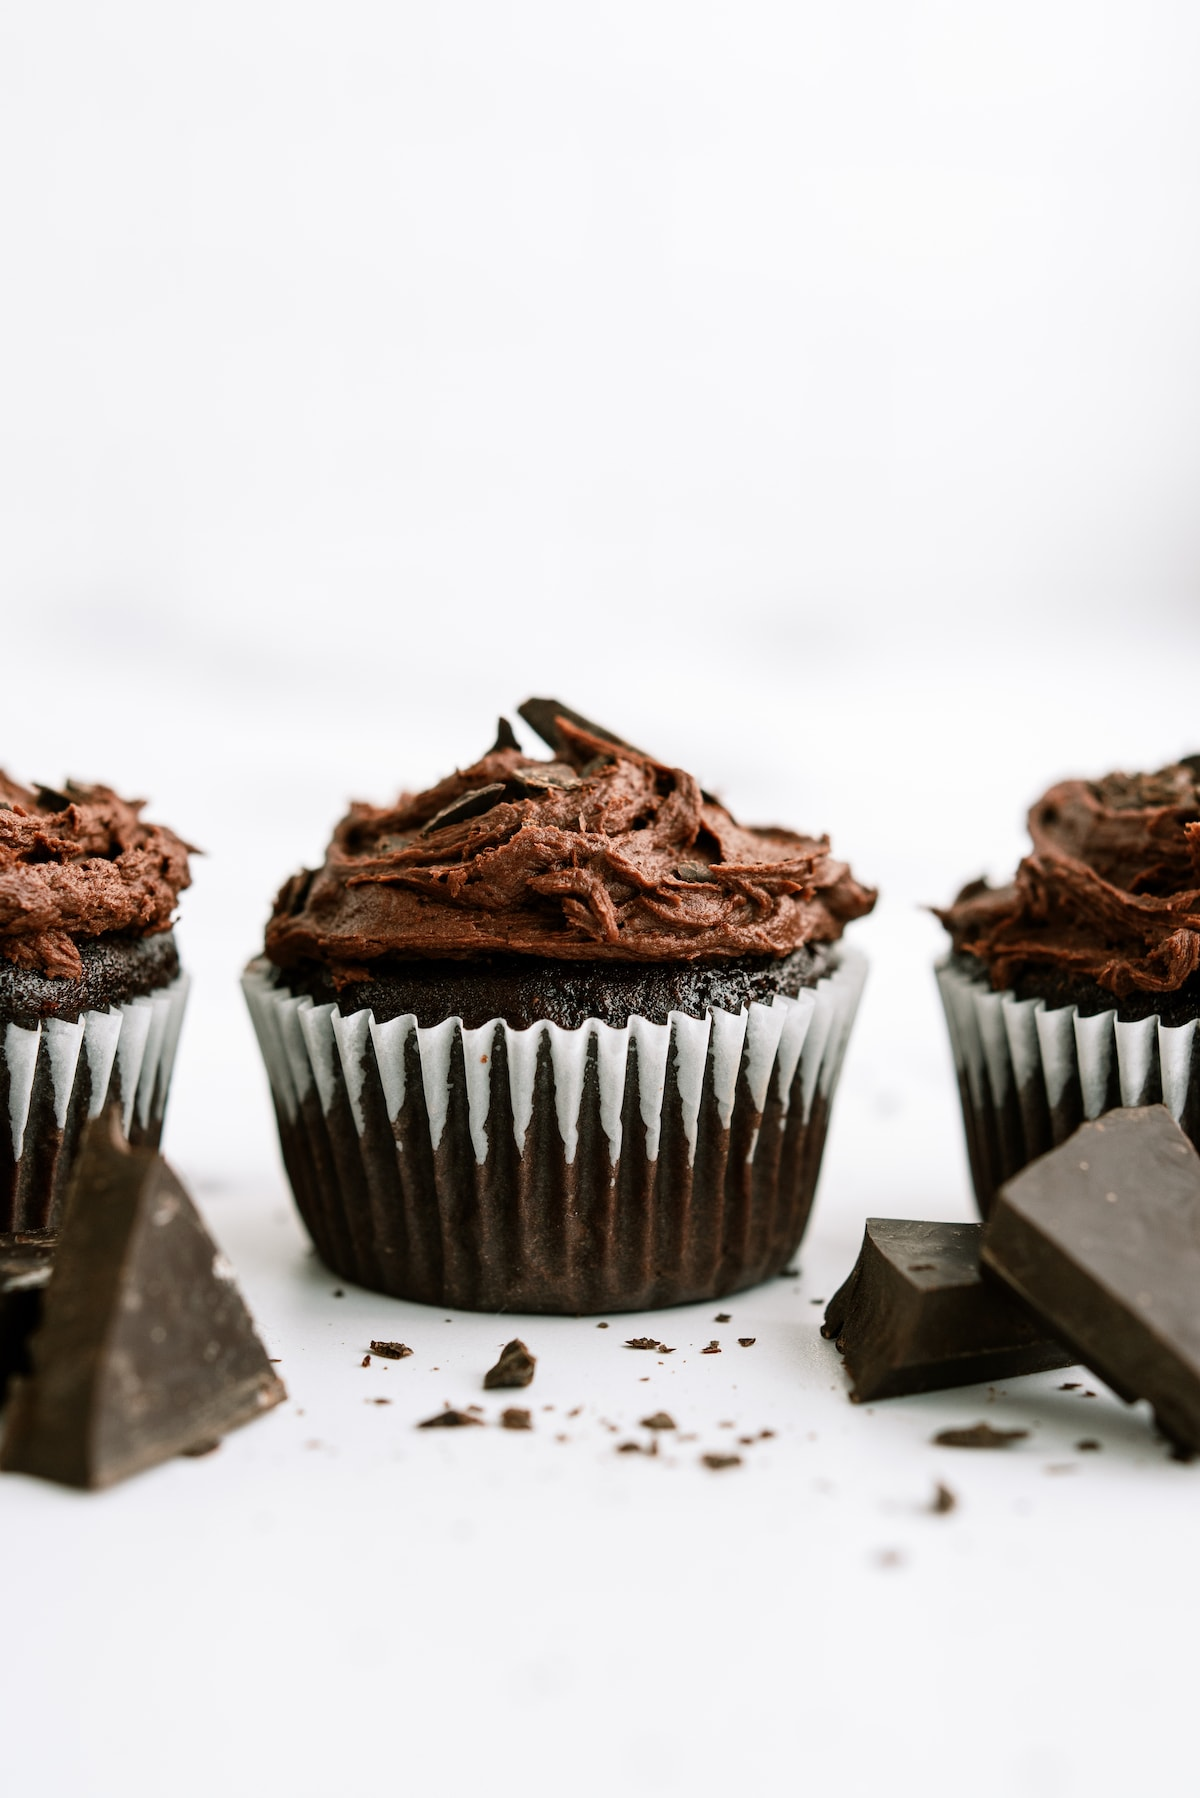 chocolate cupcakes on white counter